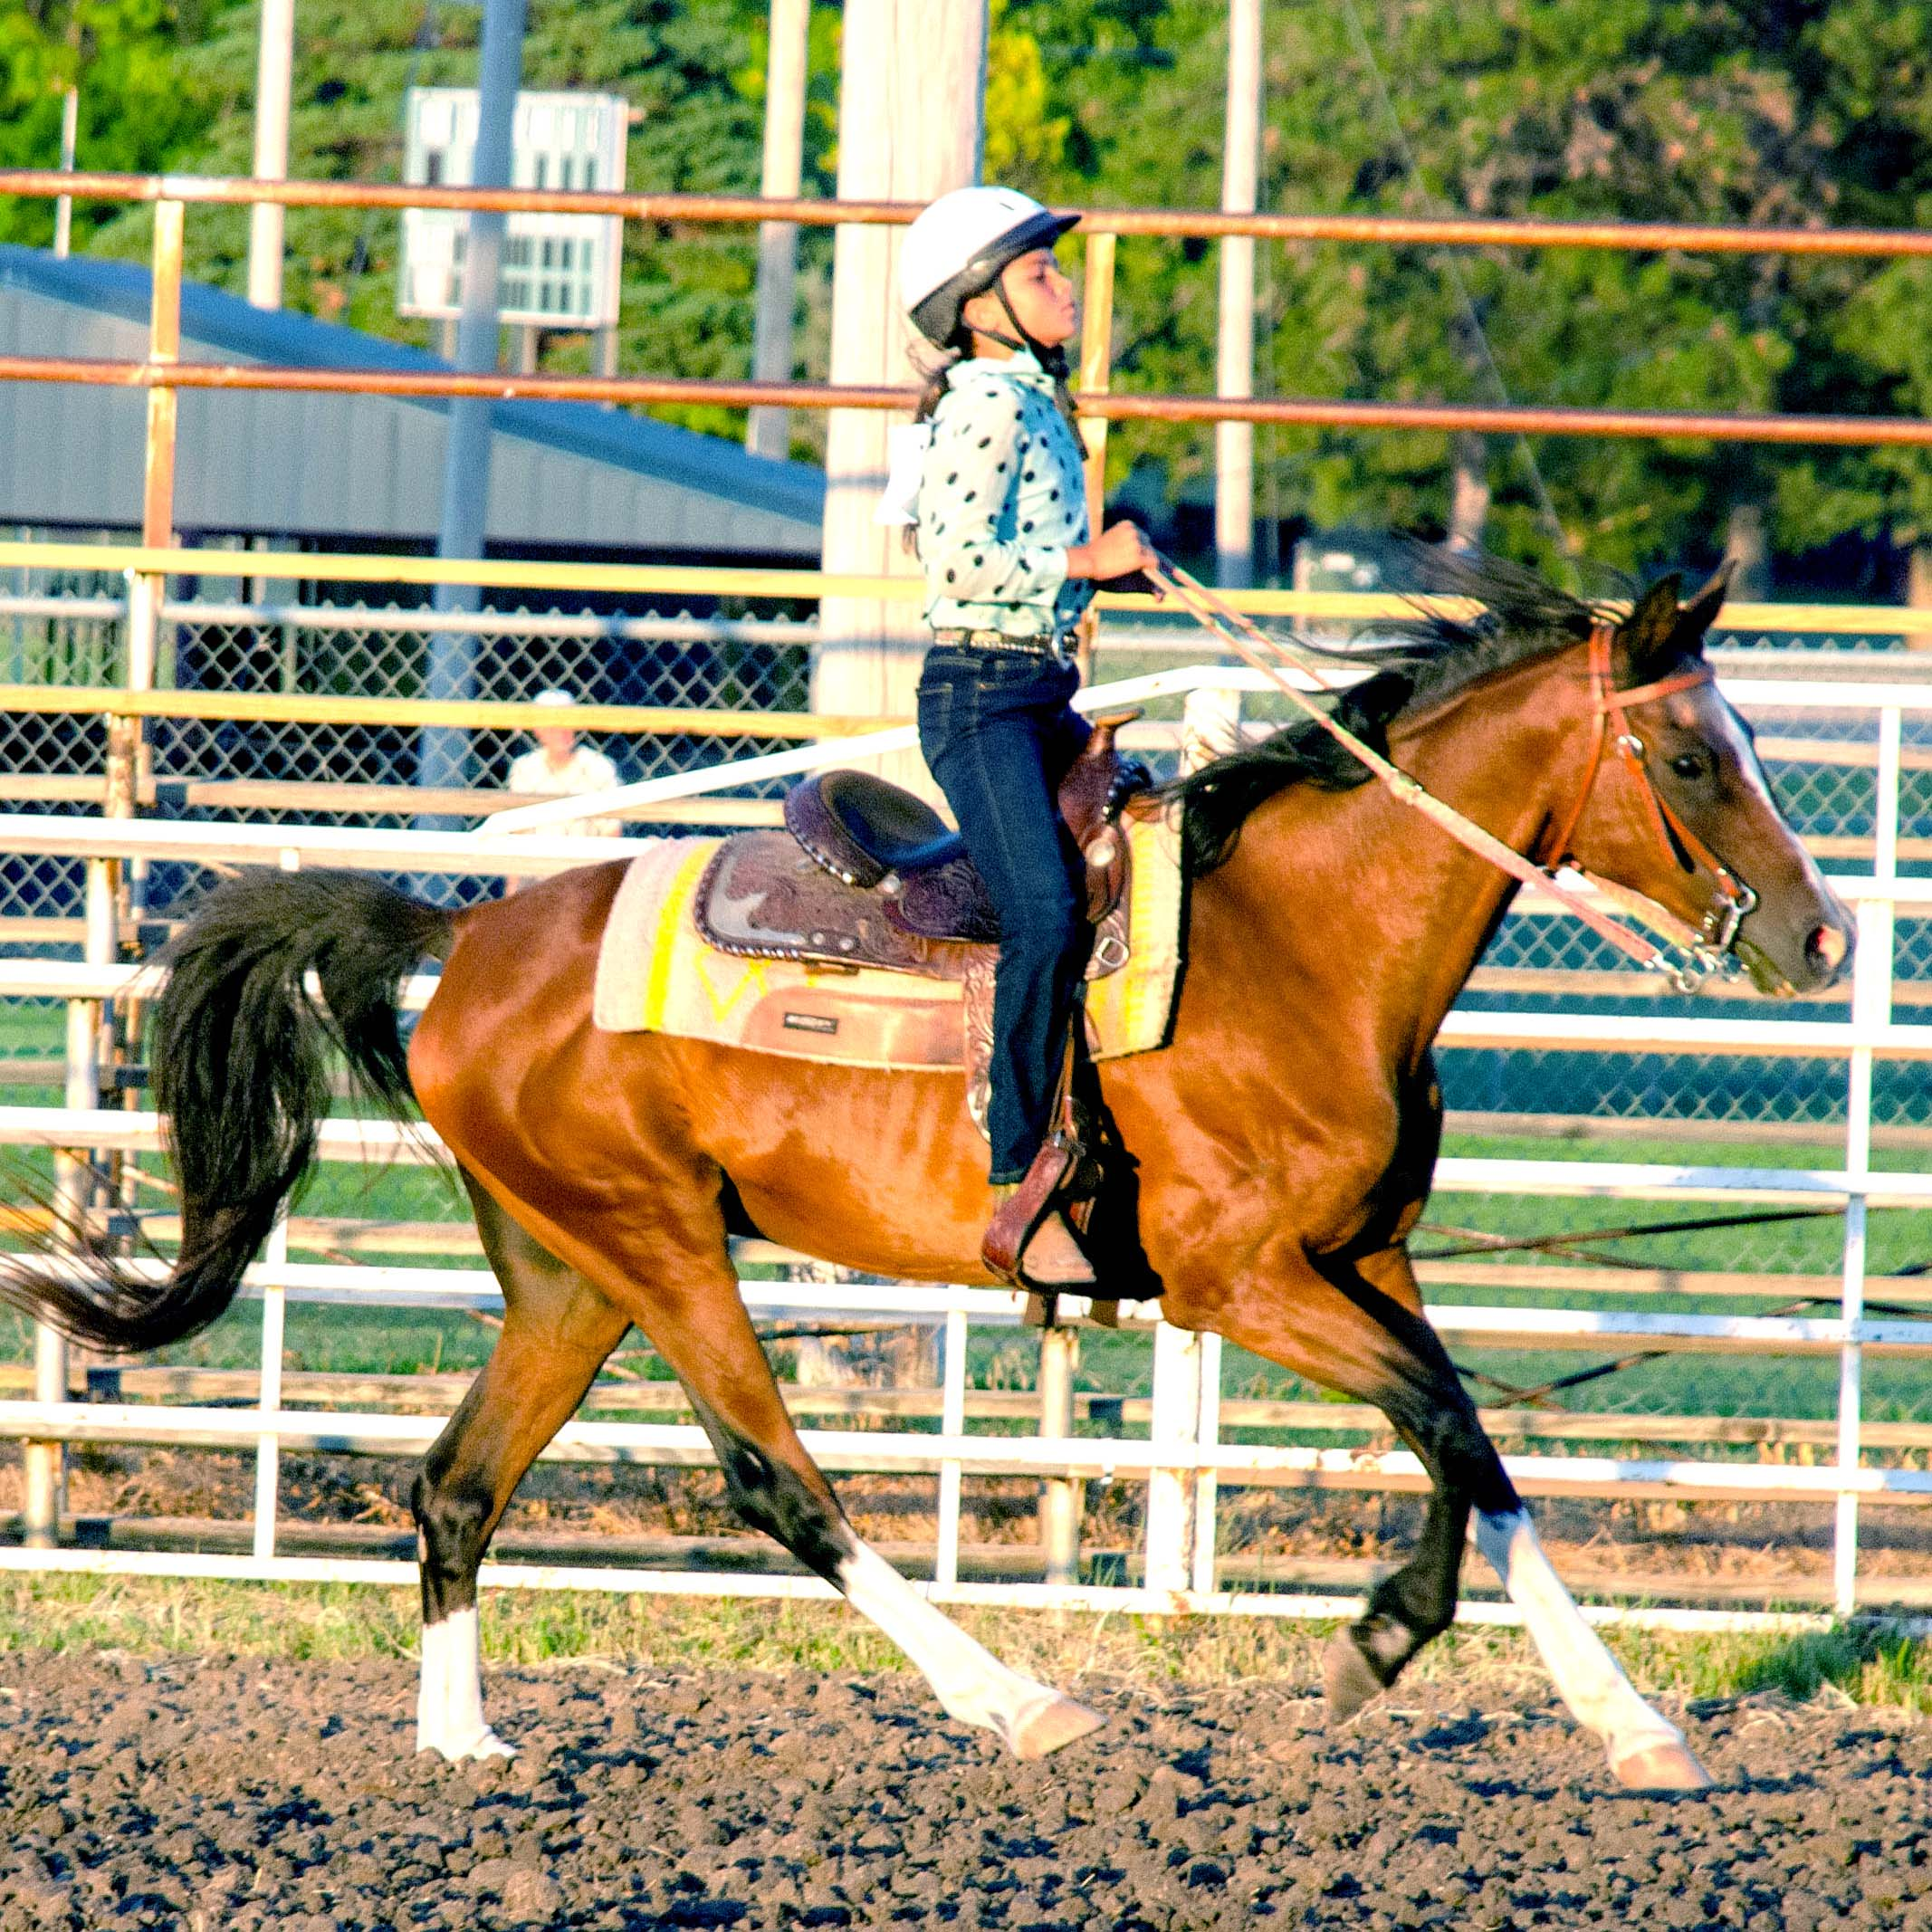 Brian Mosiman of Grab 'n' Go Hot Dogs was a food vendor at Peabody Cruise downtown Sunday. Mosiman helped Linda Martinez, Peabody, load a ballpark frank for her husband Paul, who was minding his own booth of burritos across the street. Mosiman lives in Emporia and has been operating a food cart for about a year.